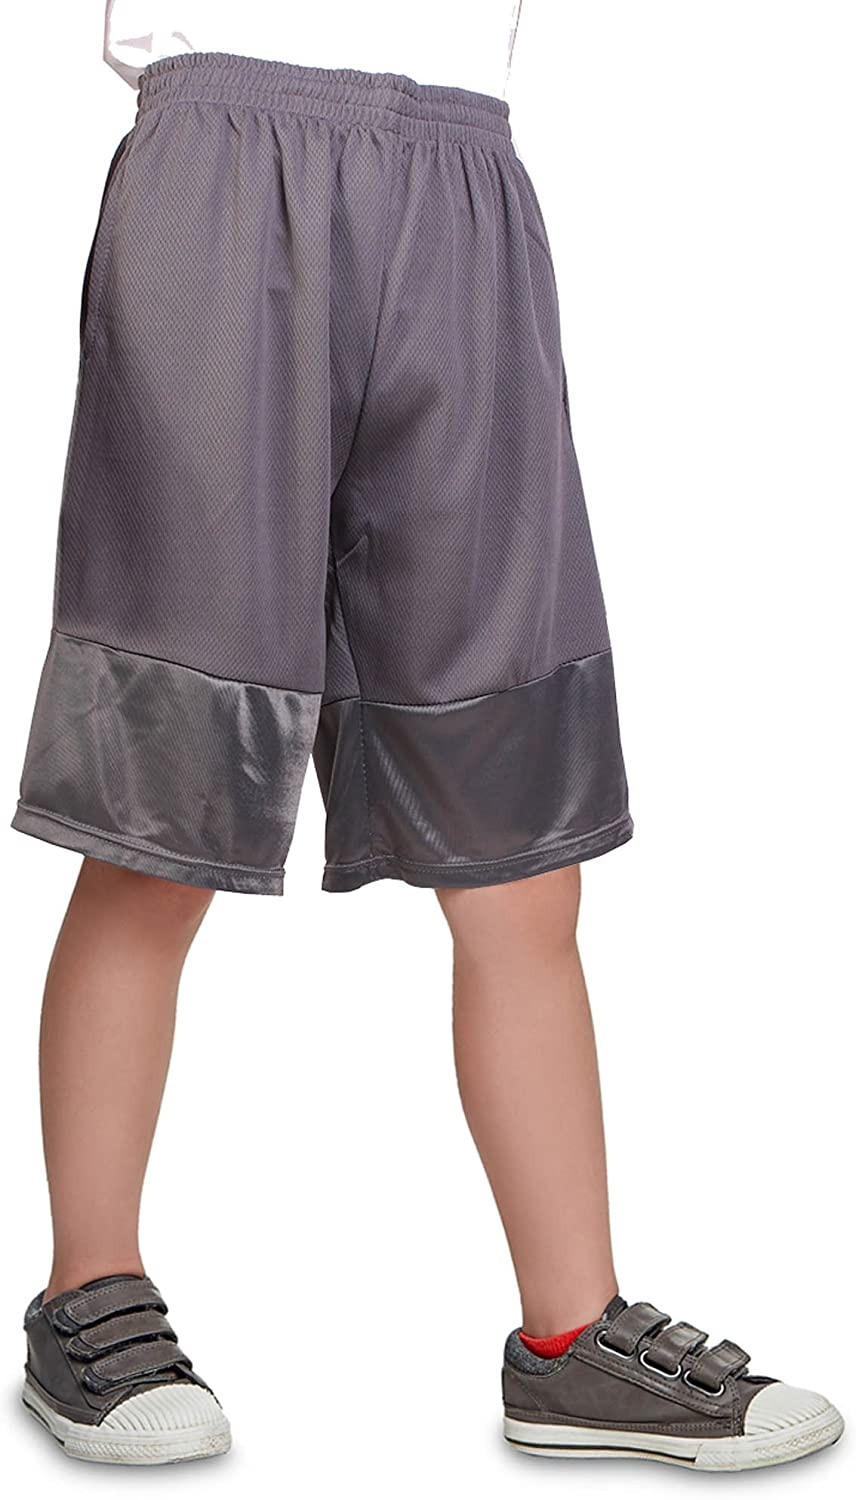 North 15 Boy's Athletic Basketball Shorts with Side Pockets (8-18)